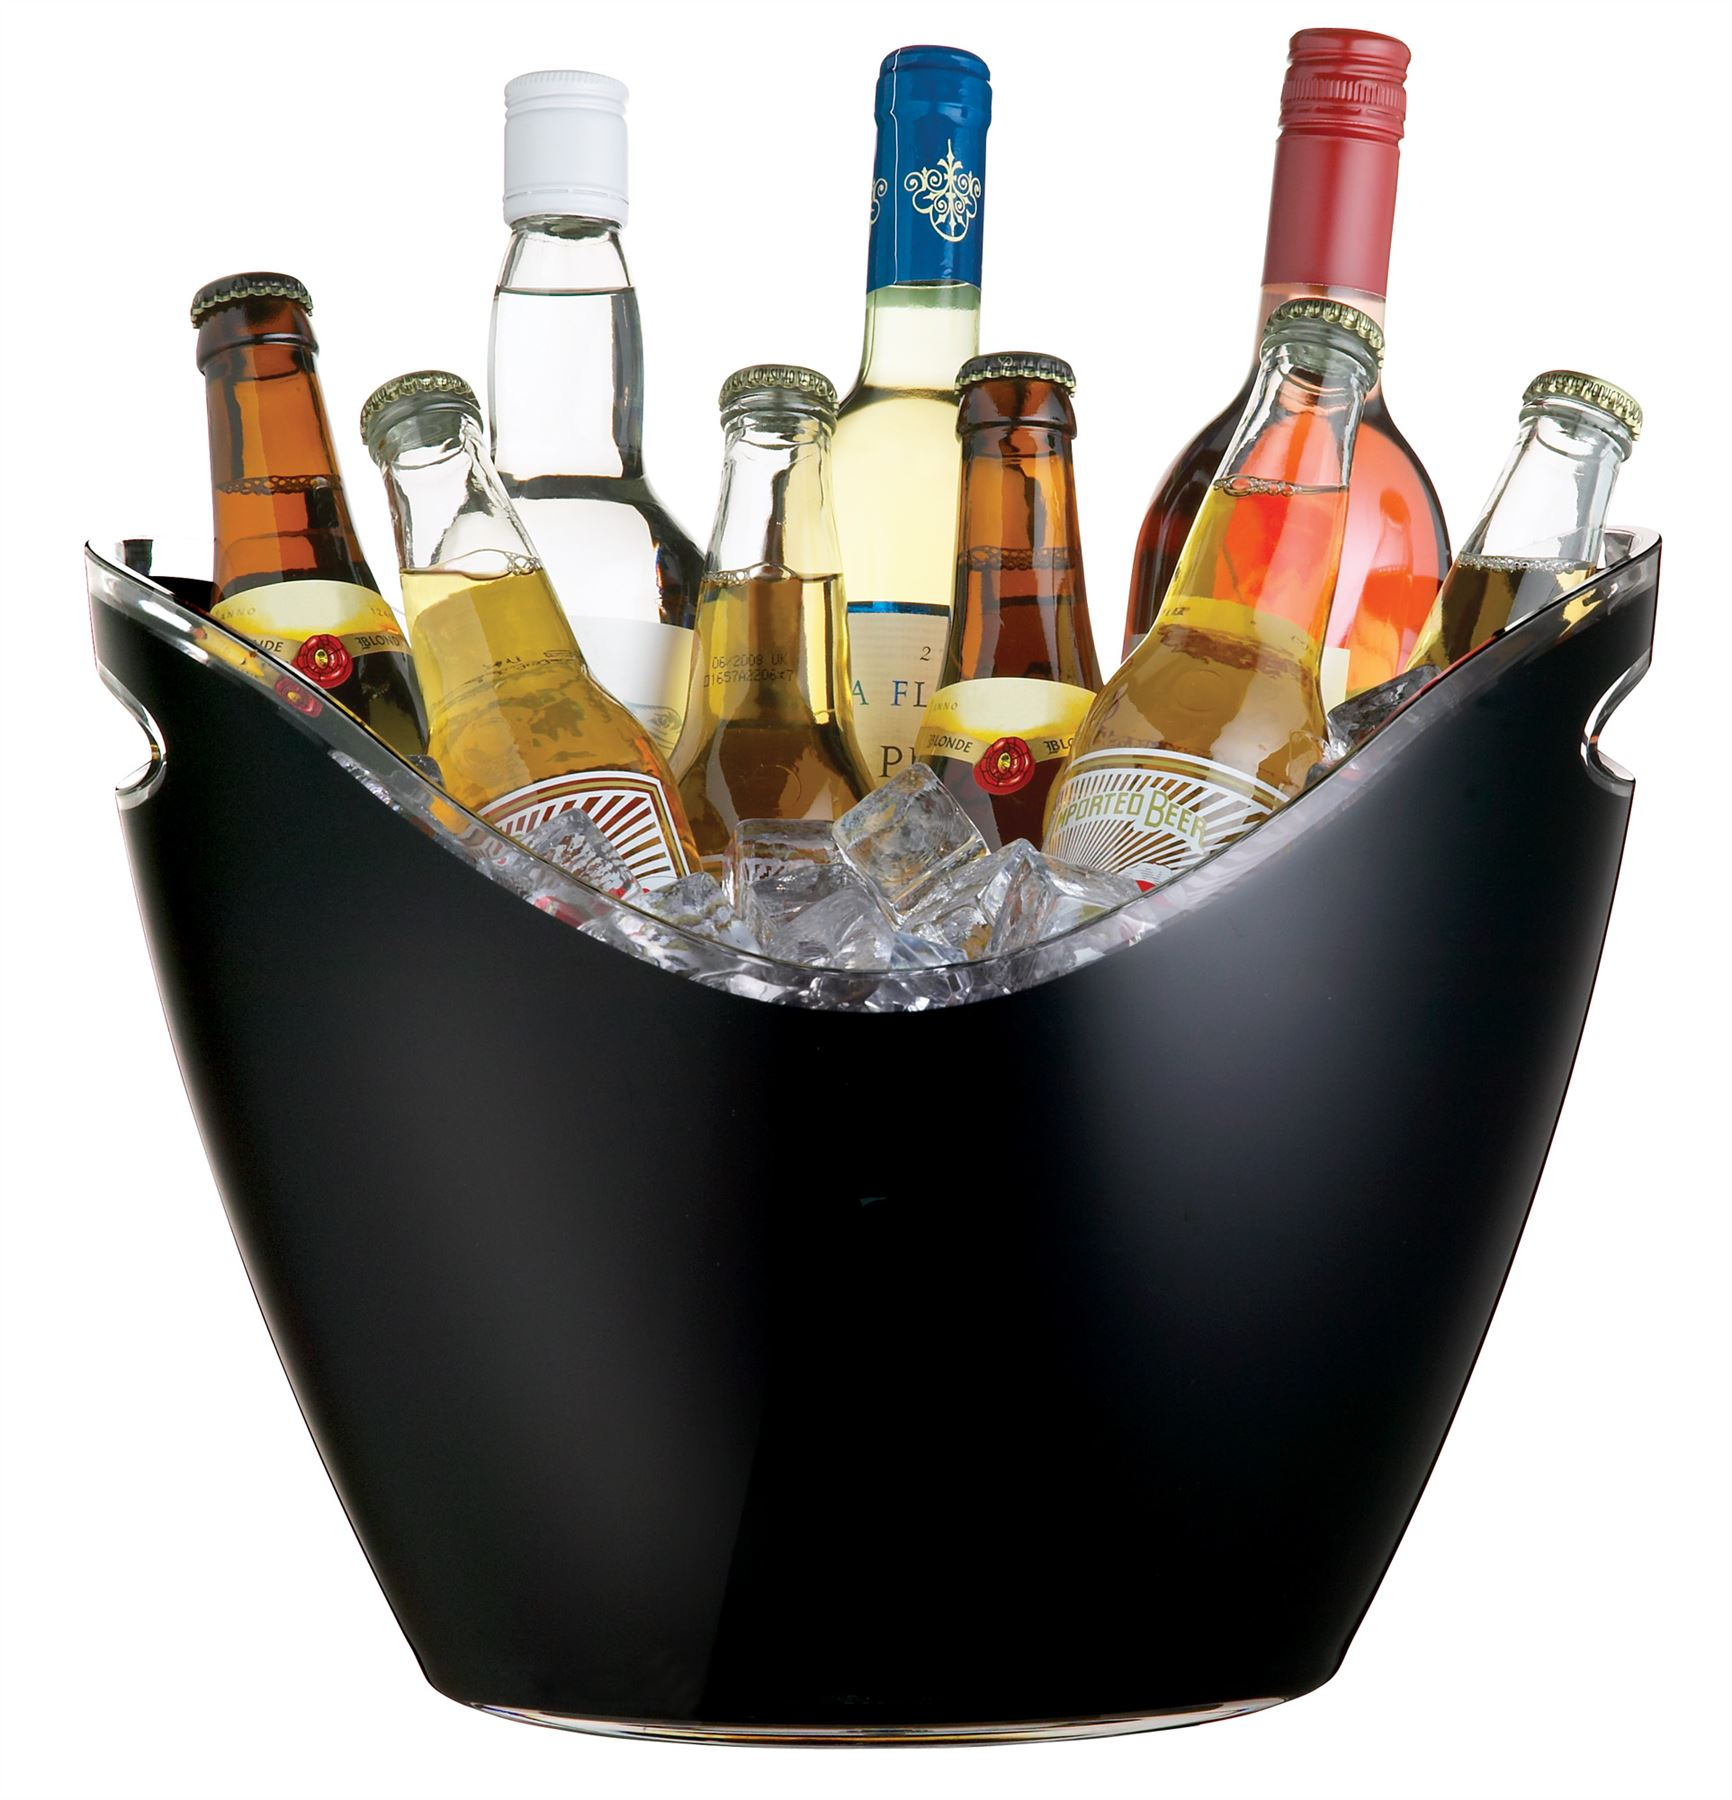 Champagne Beer Ice Bucket Black Acrylic Plastic Large Oval Drinks Pail Cooler Ice Buckets Wine Coolers Home Furniture Diy Plastpath Com Br